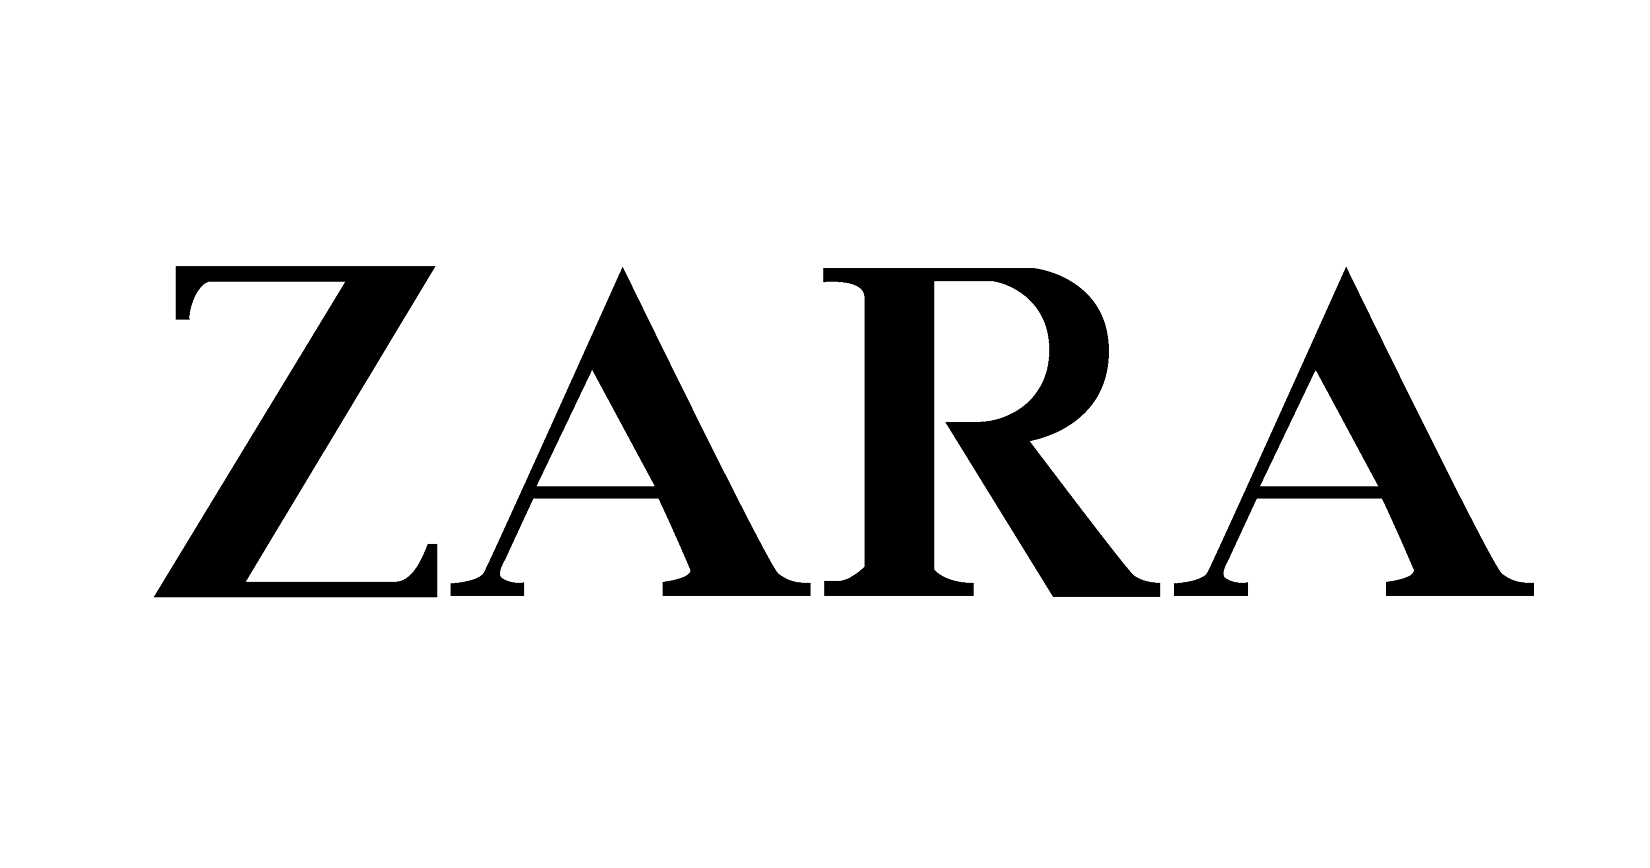 zara logo zara symbol meaning history and evolution rh 1000logos net Clothing and Apparel Logos fashion and clothing logos and names